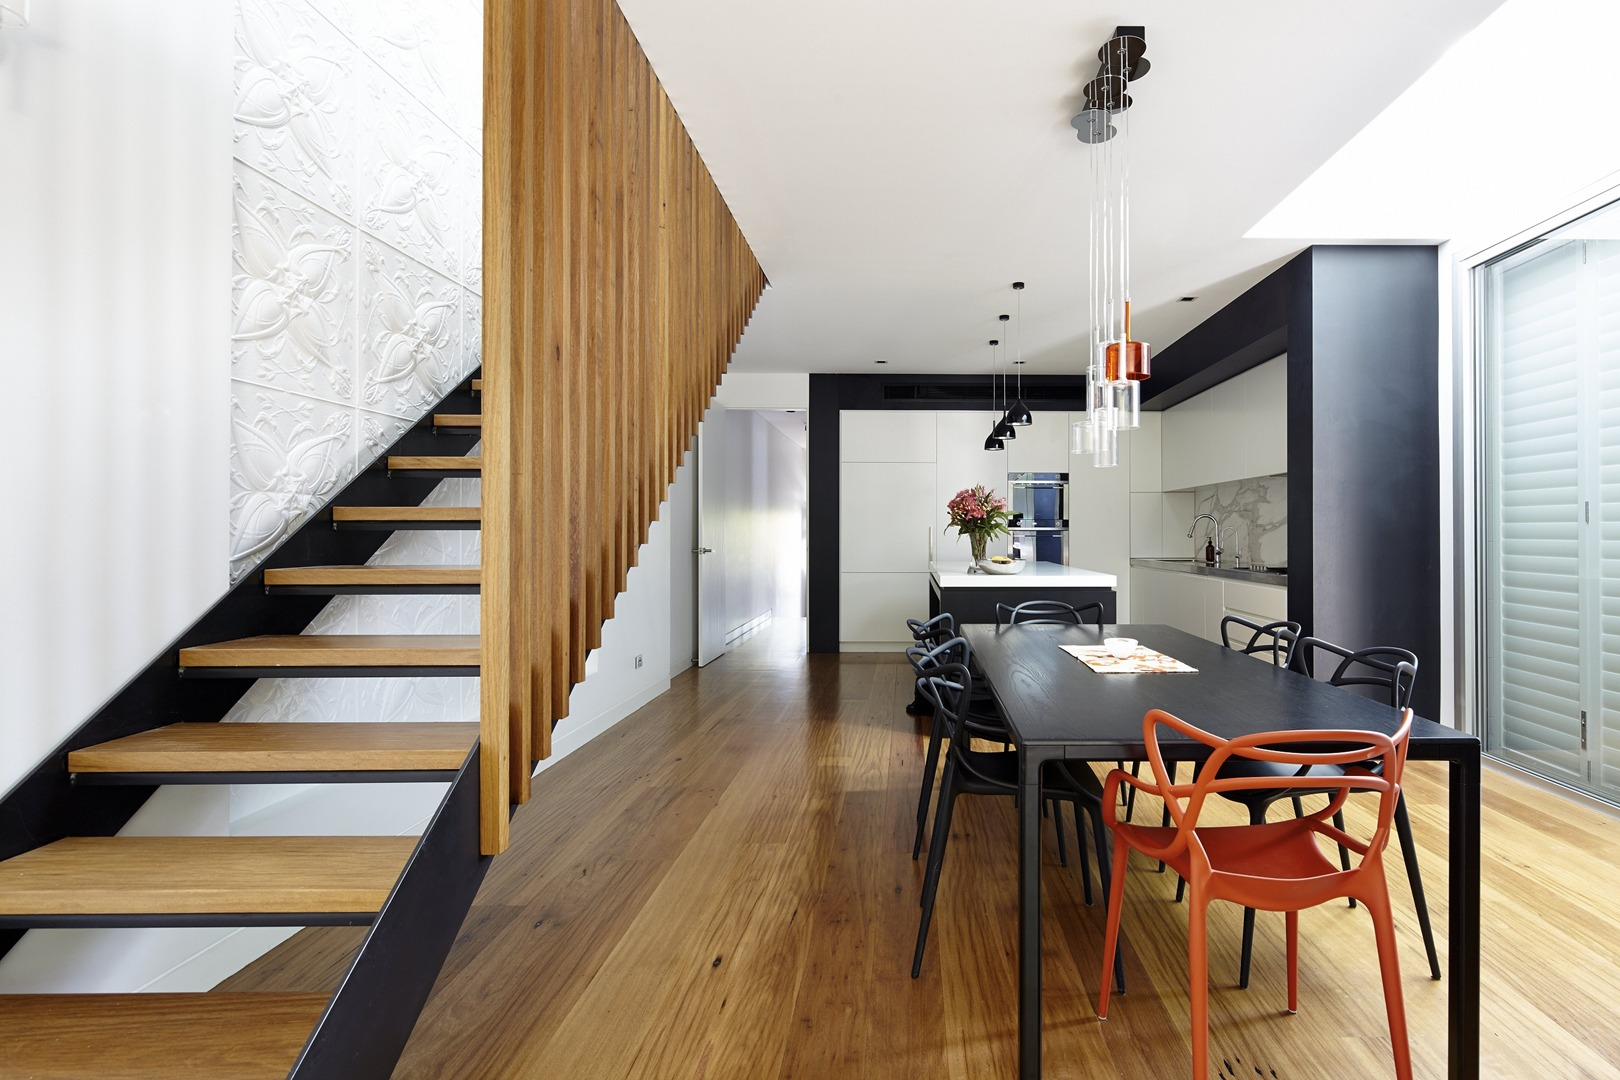 Lot 1 Design In Sydney Nsw 2038 Australia